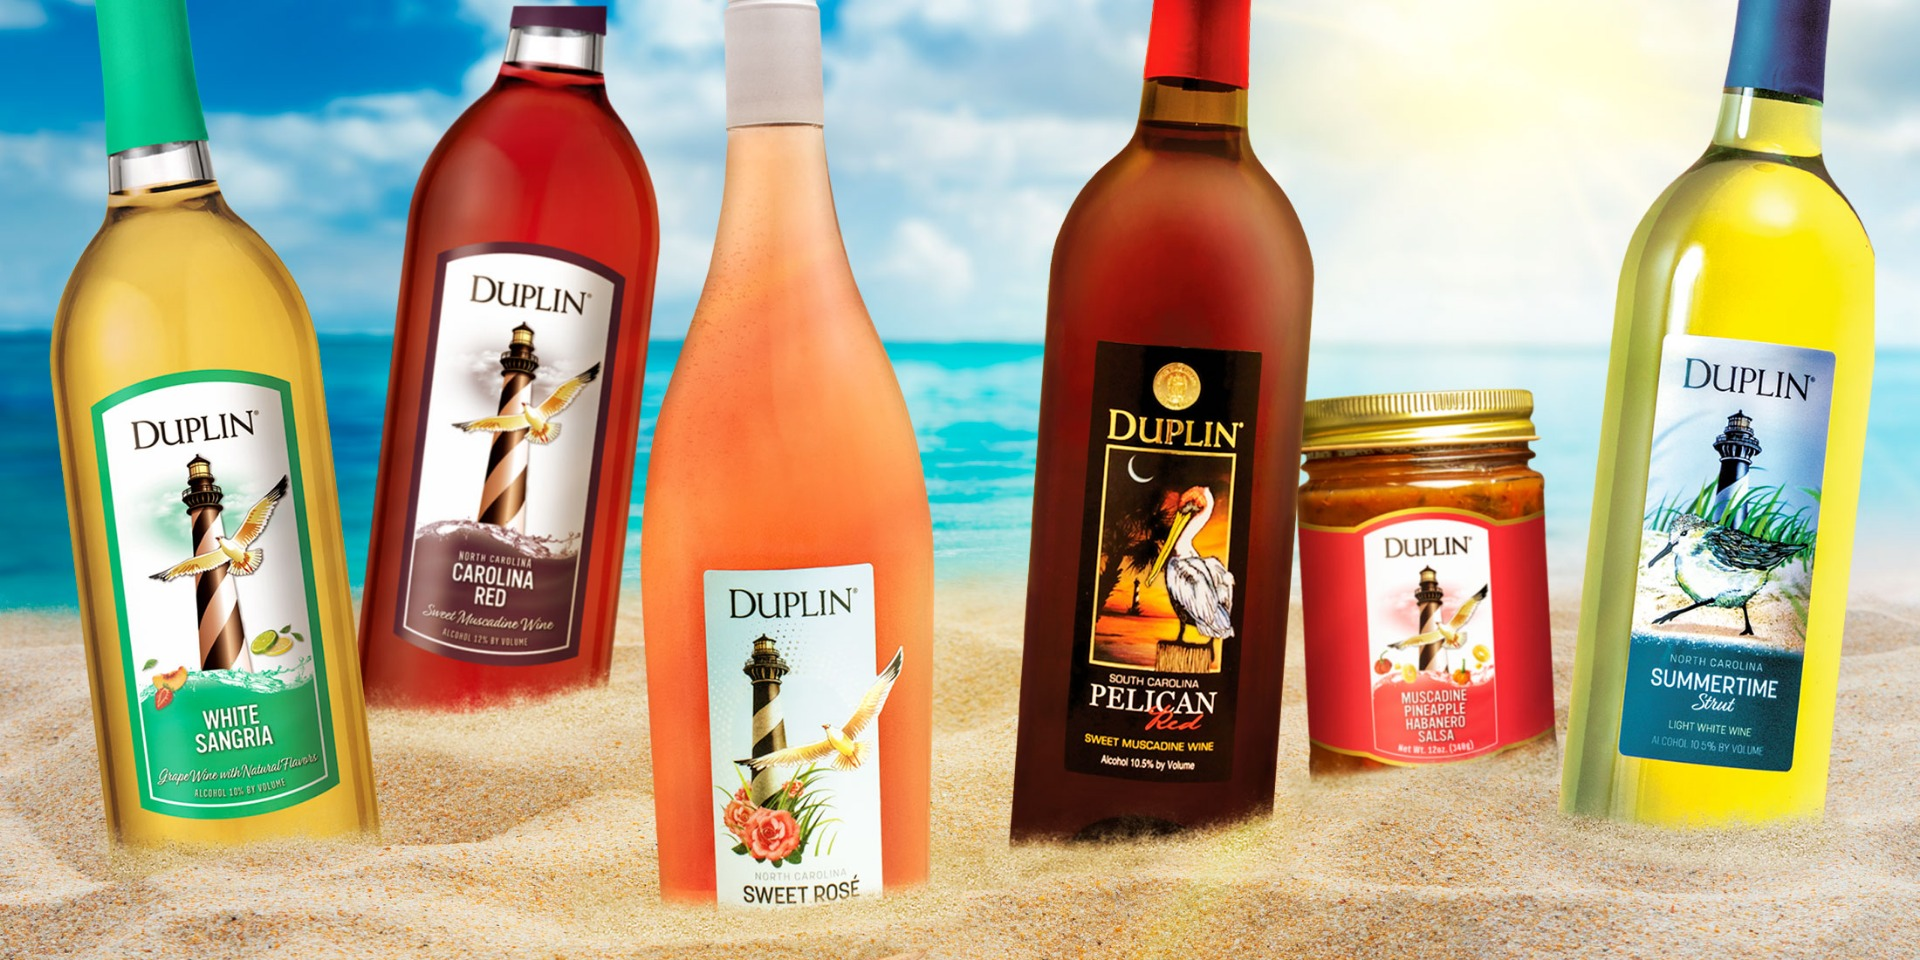 This summer wine tasting is perfect for a girls' weekend.